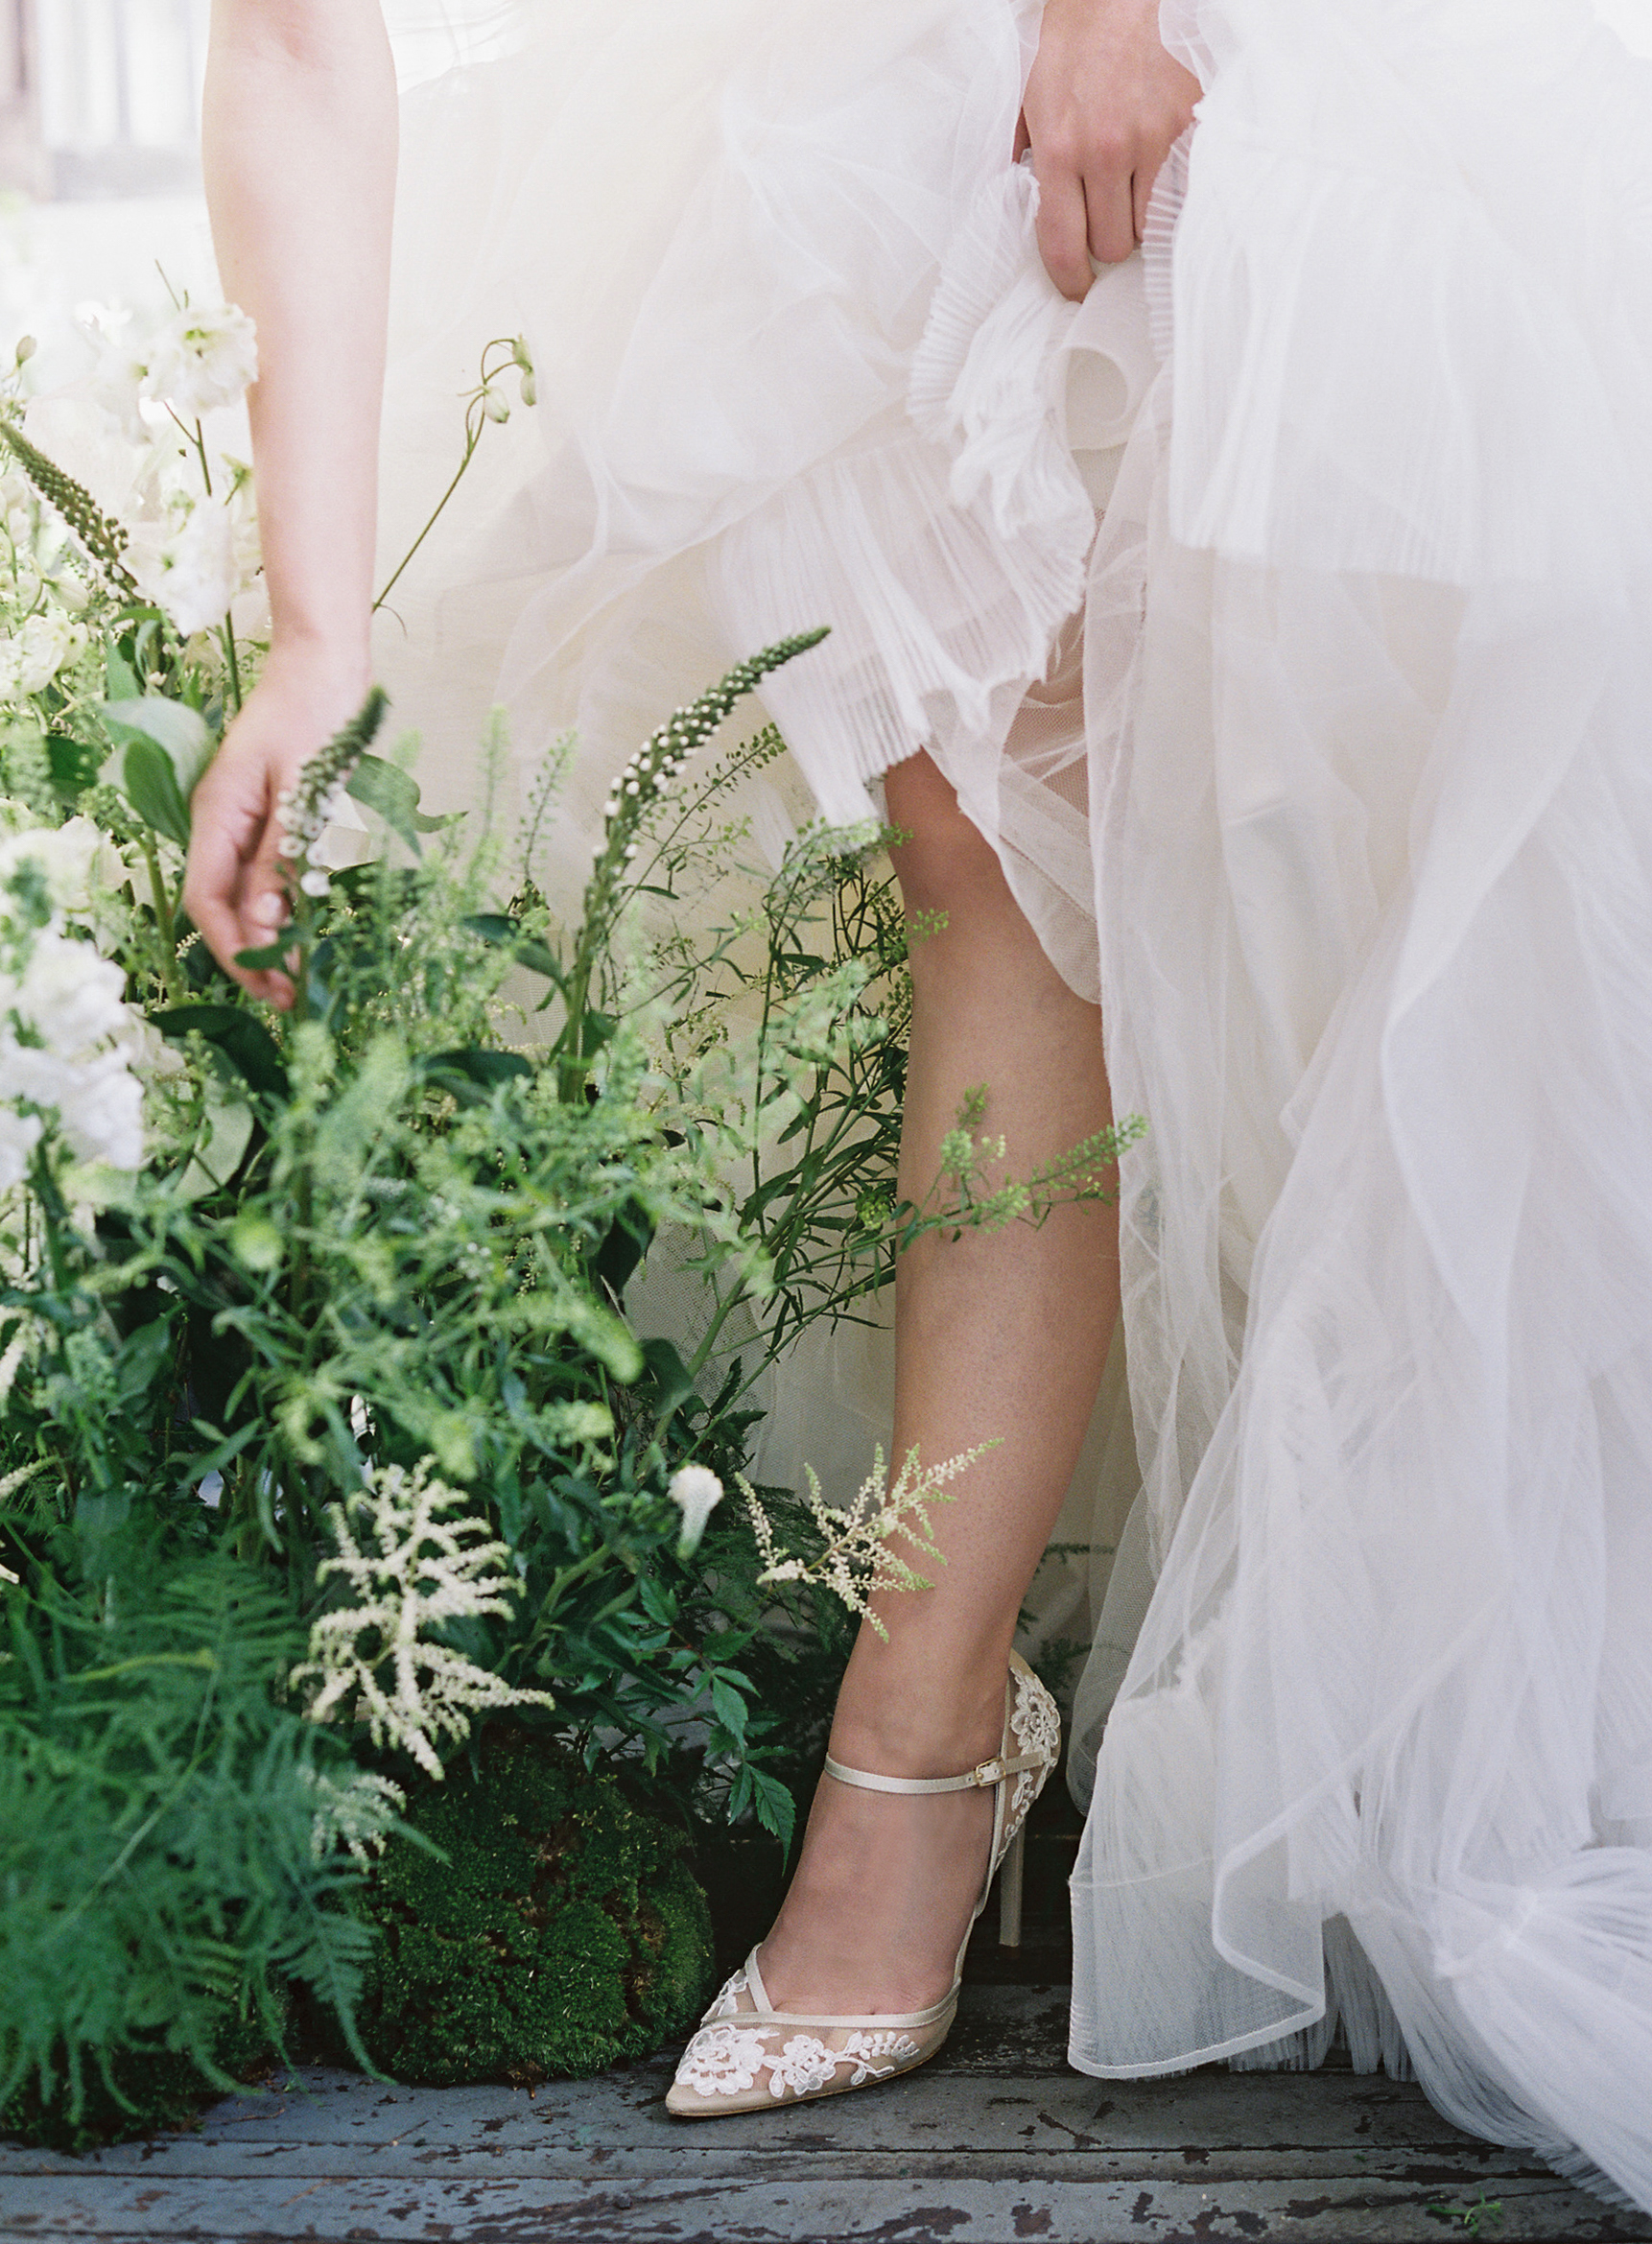 LauraGordonPhotography(c)_bellabelle2019bridal-65.jpg